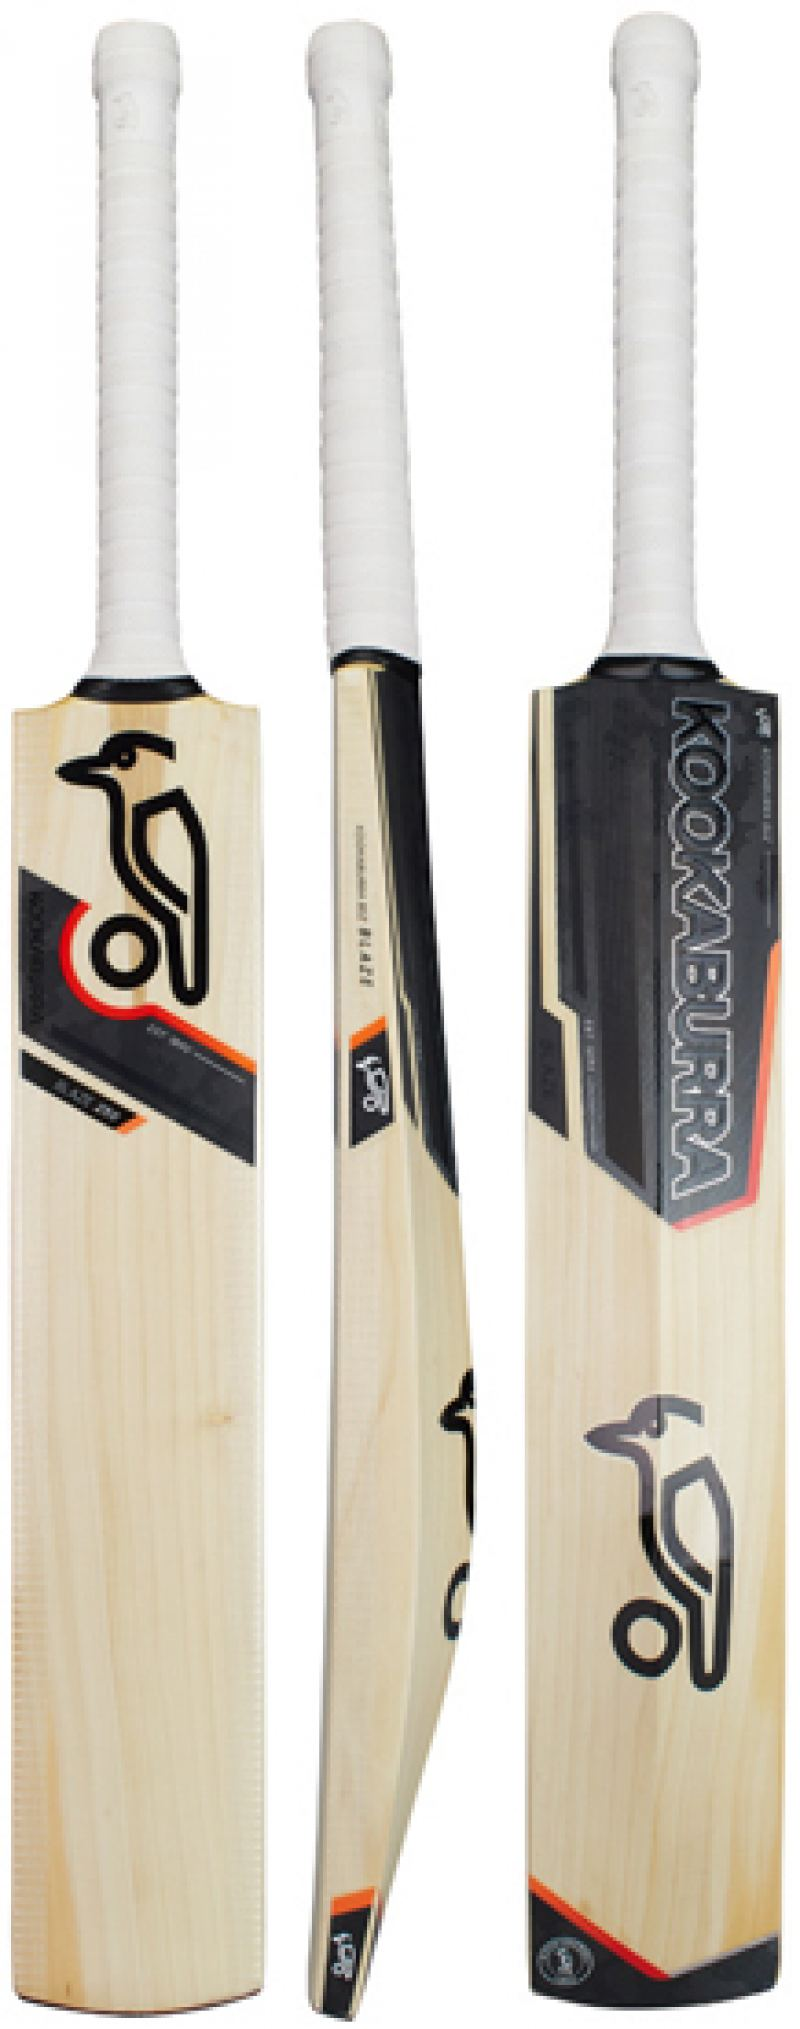 Kookaburra Blaze 250 Cricket Bat